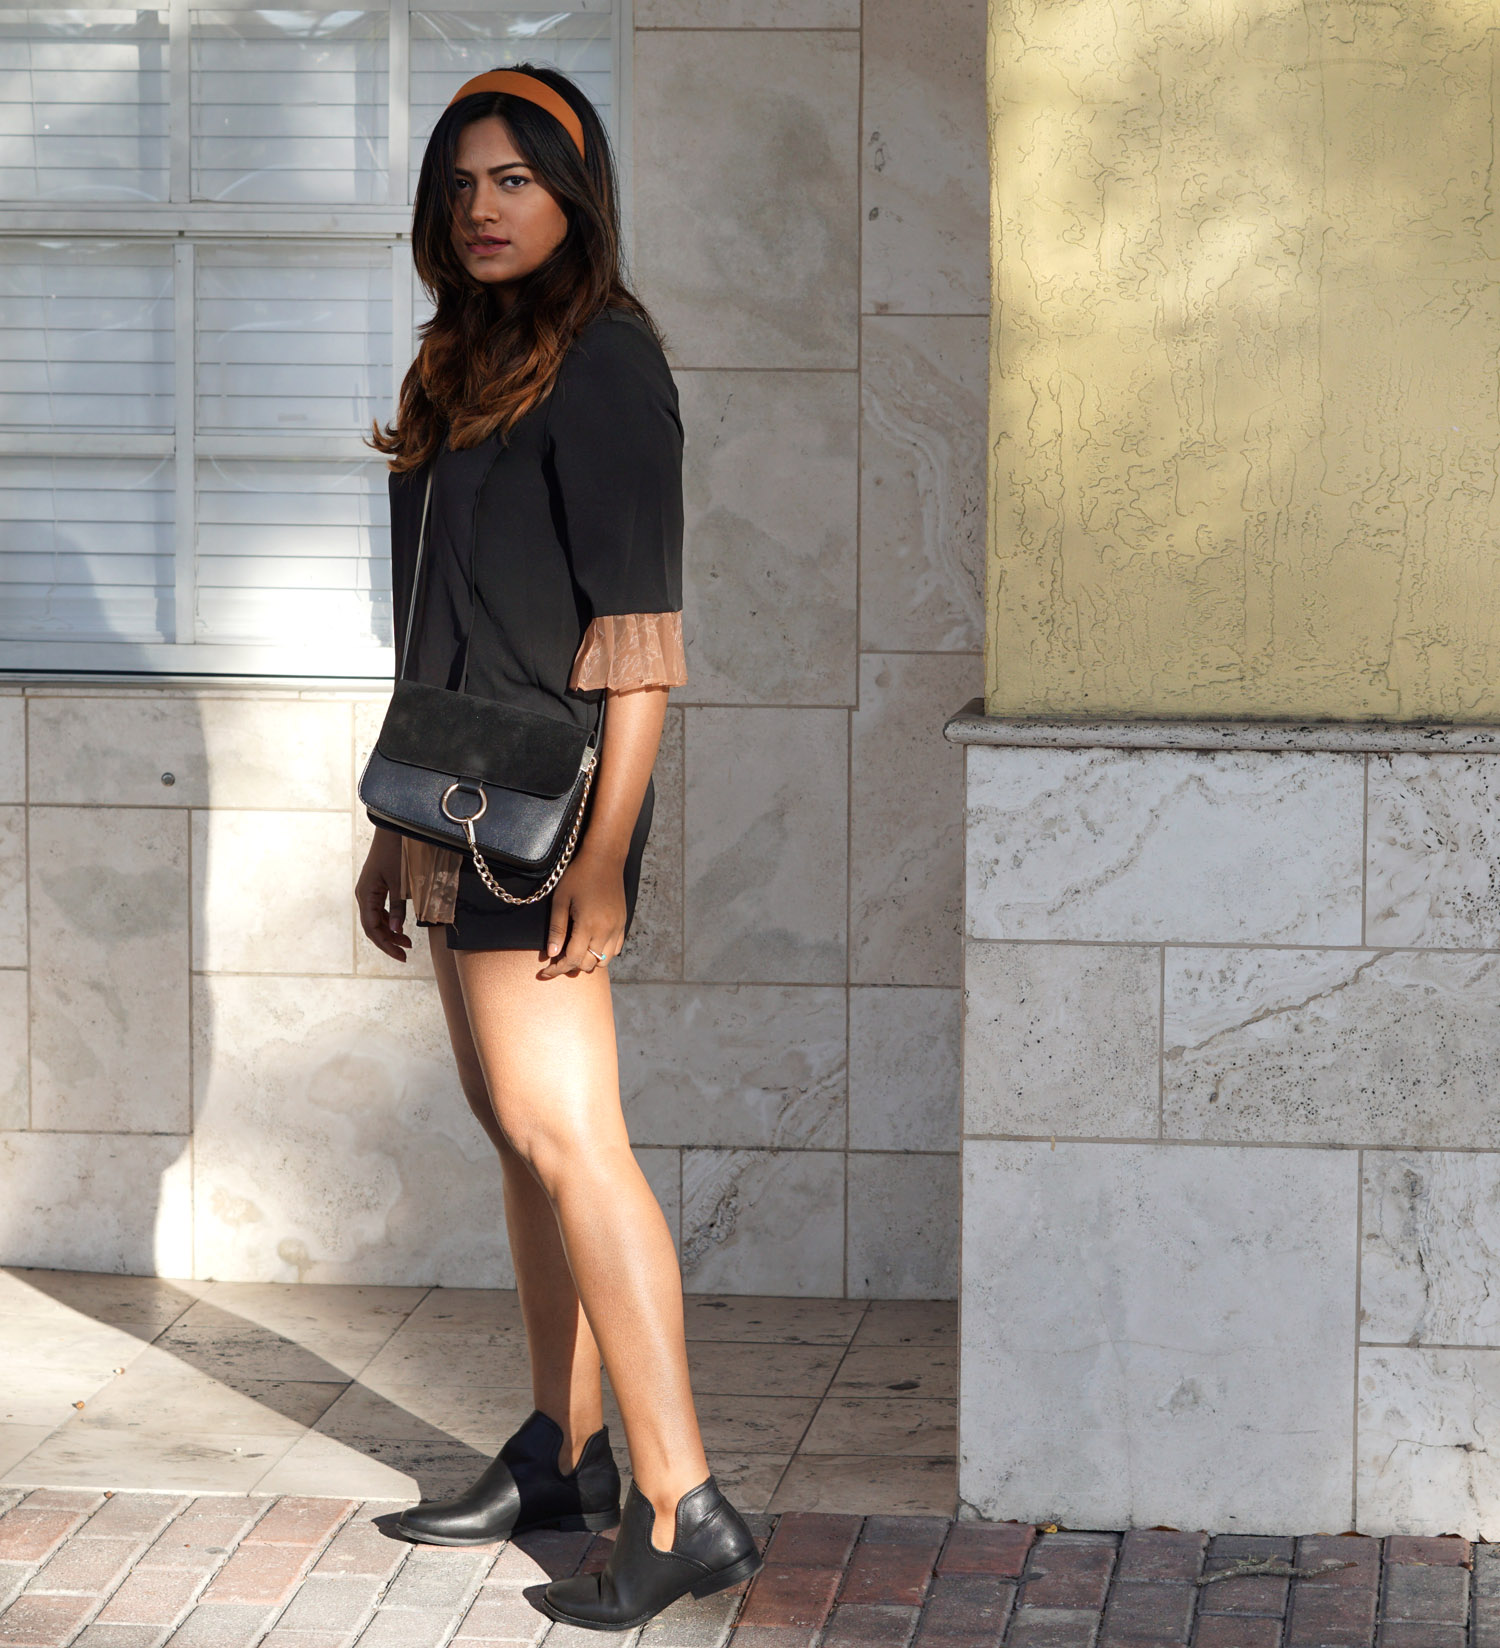 Top Miami Lifestyle Blogger Afroza Khan Chic Stylista